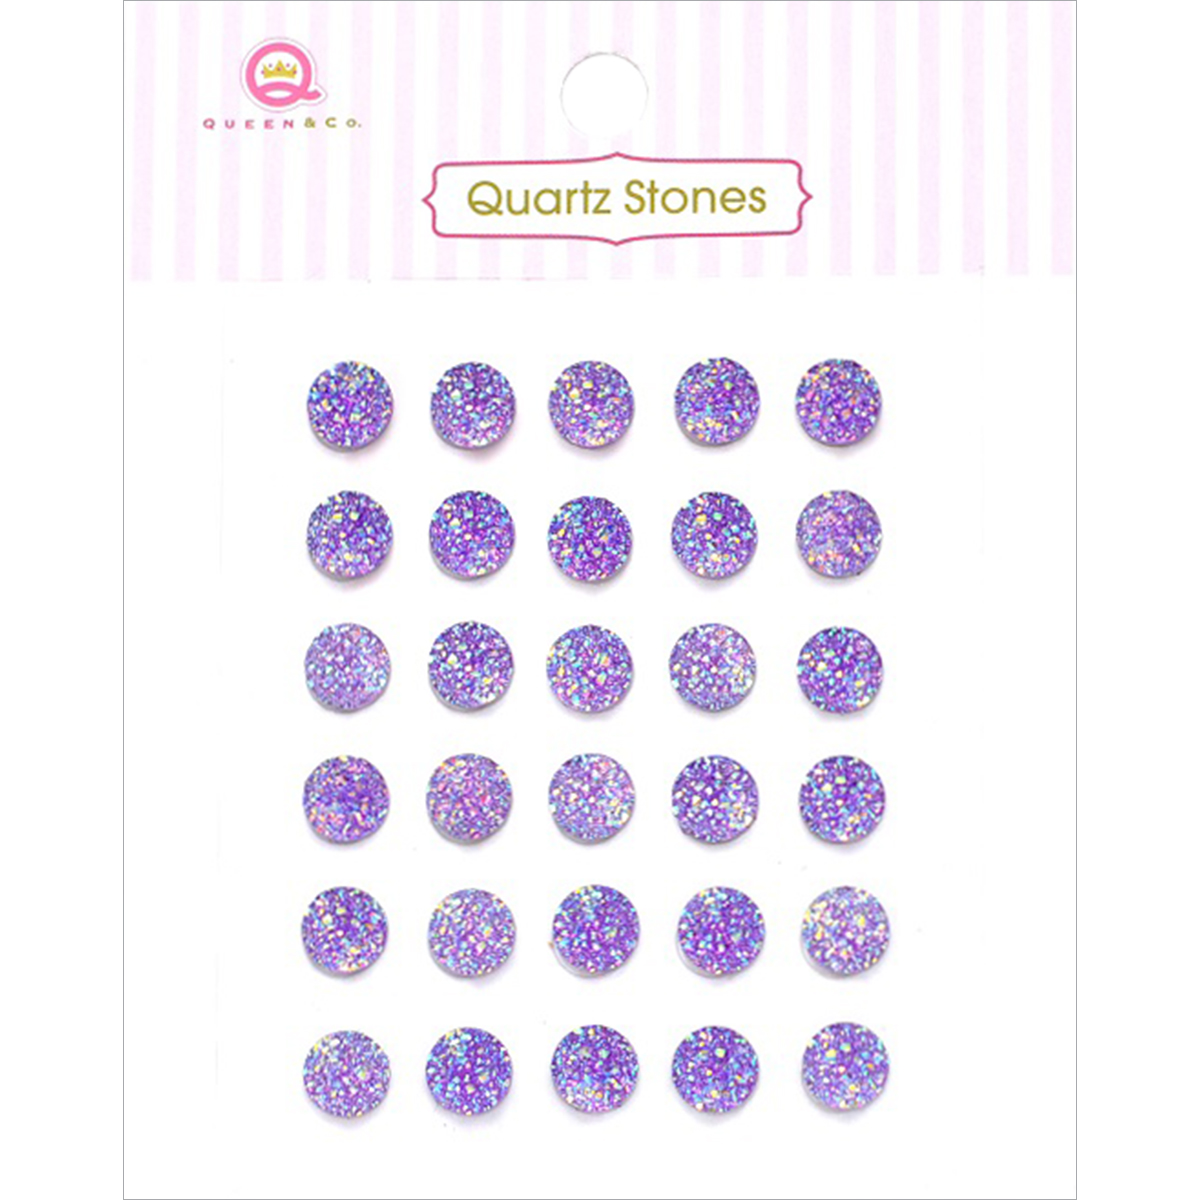 Quartz Stones Self-Adhesive Embellishments 30/Pkg-Purple